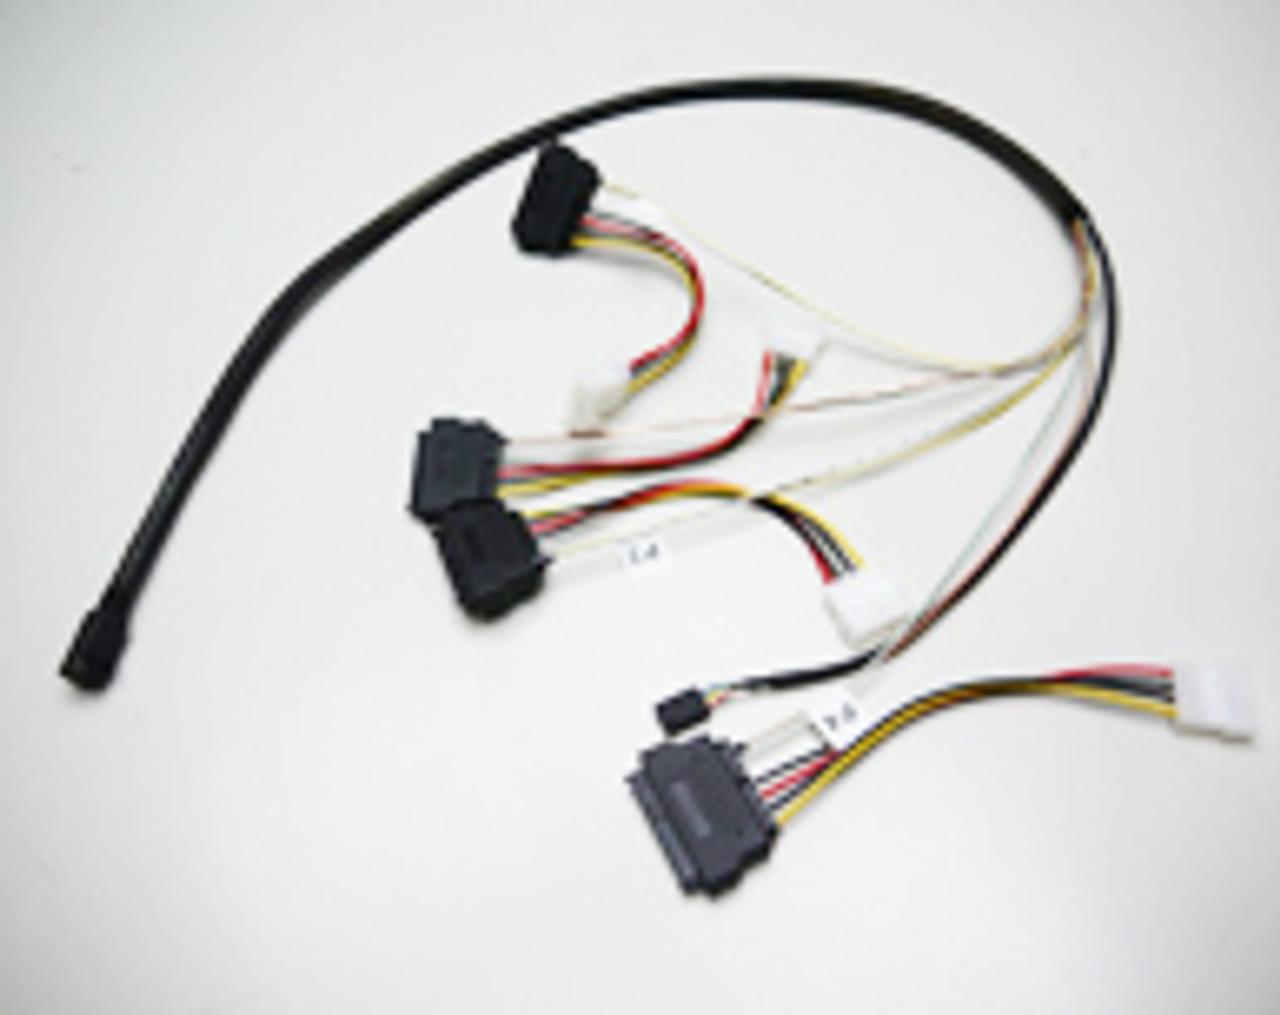 Product image for 1M Internal Mini SAS HD to 4xSAS29 And Power Cable | CX Computer Superstore